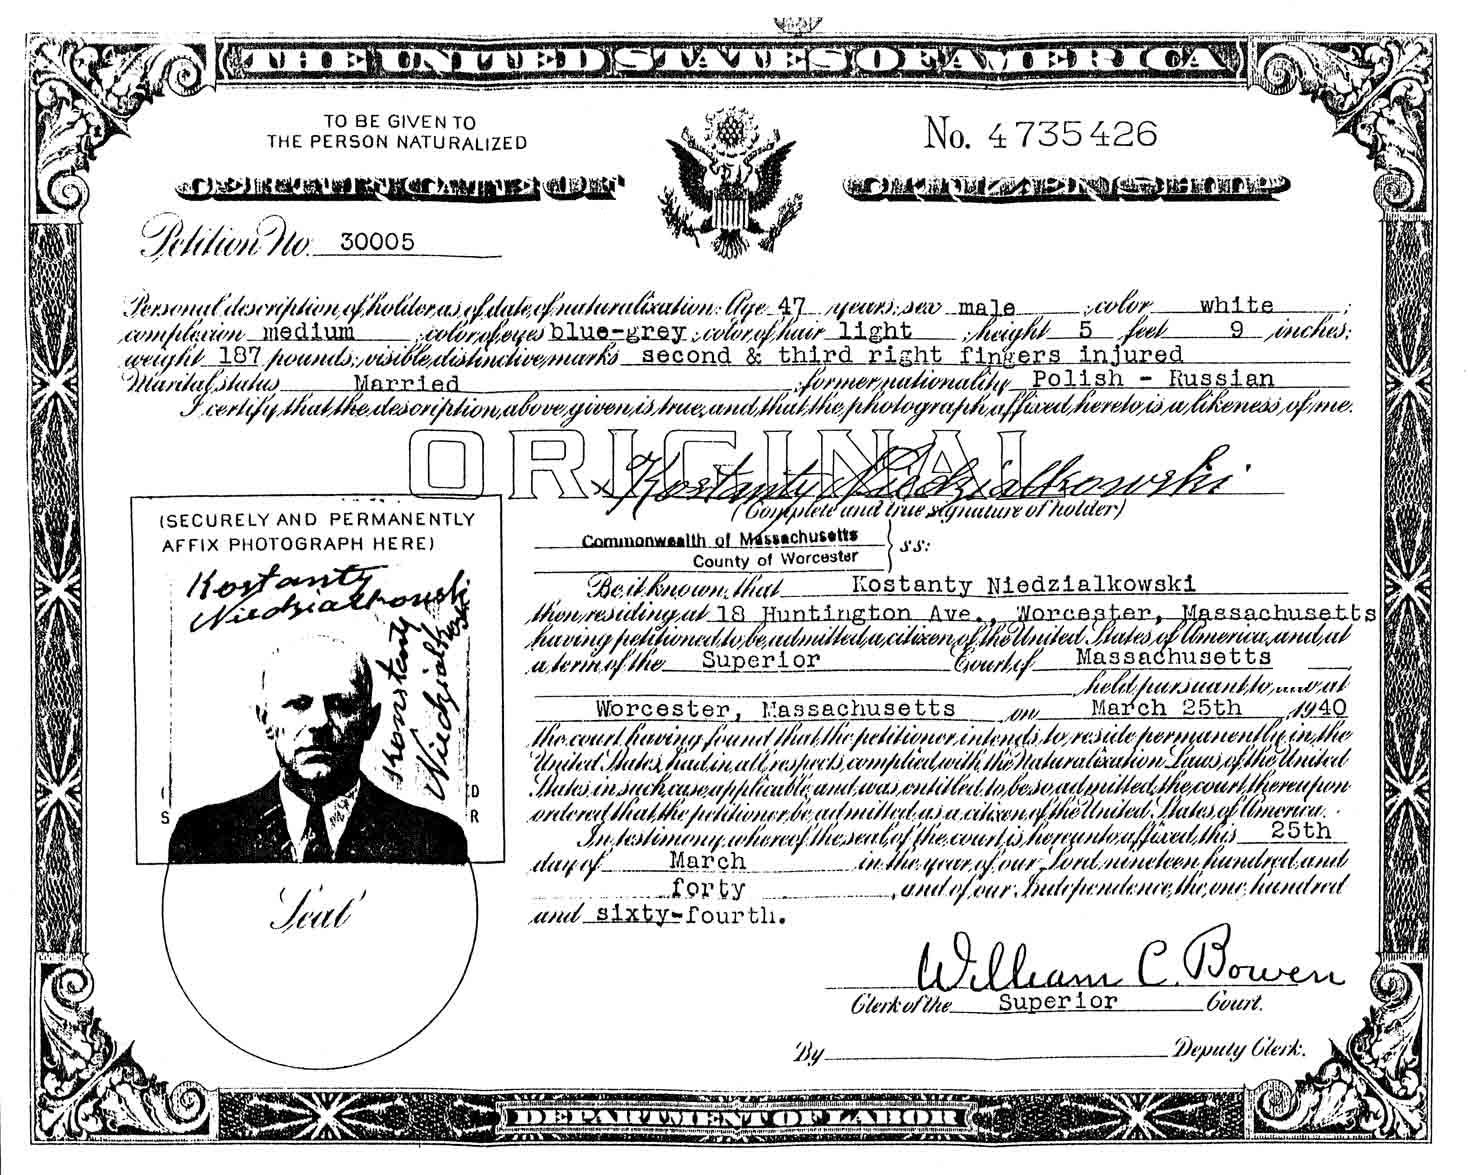 Certificates of citizenship steves genealogy blog kostanty niedzialkowskis certificate of naturalization xflitez Choice Image